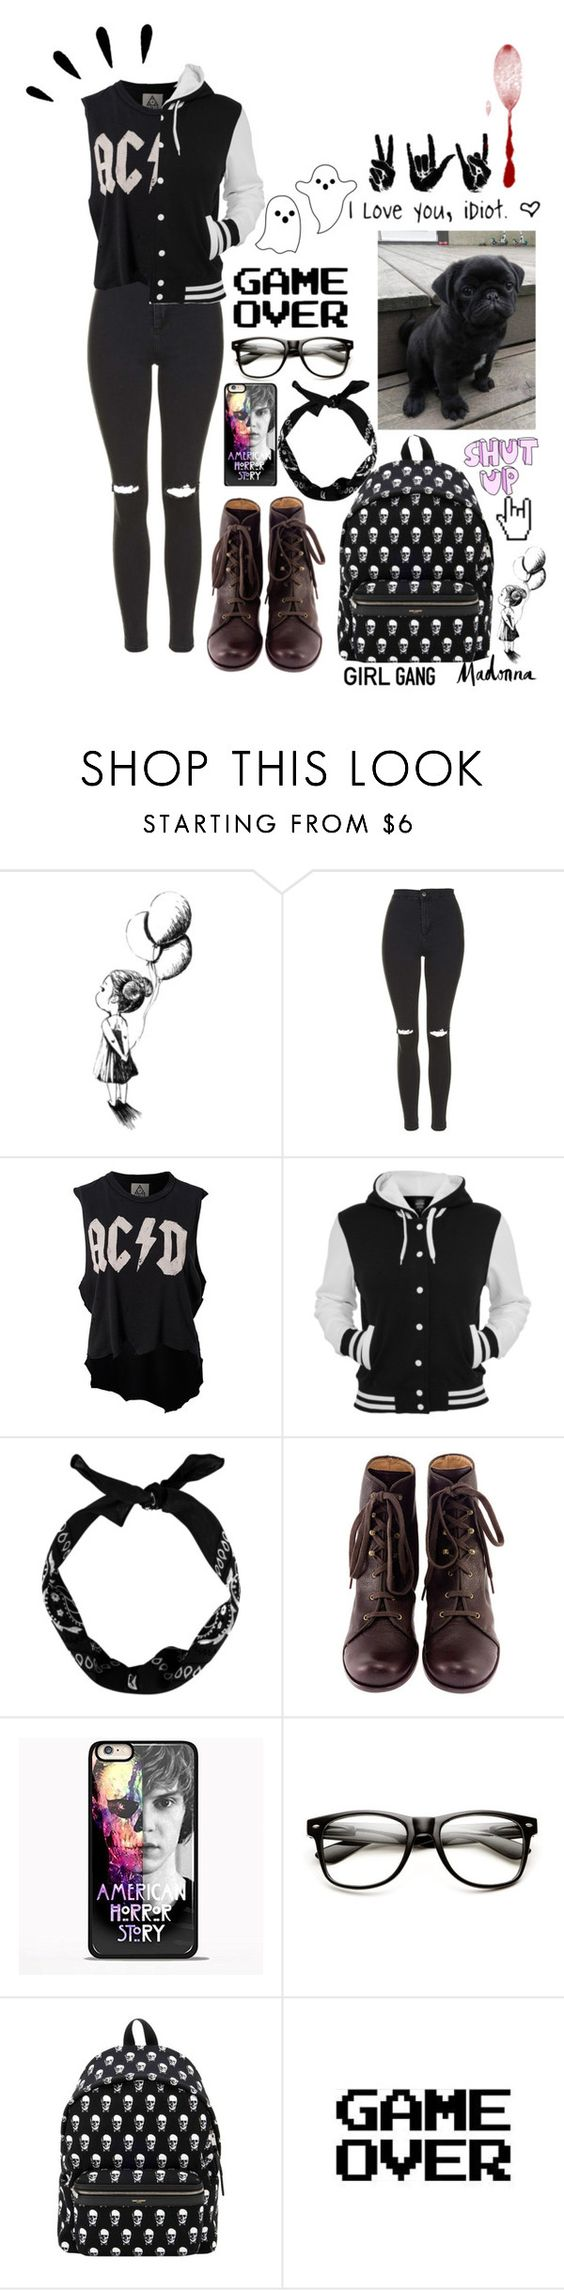 """""""Girl Gang School"""" by thaisa-tcs ❤ liked on Polyvore featuring Topshop, UNIF, Weiss, Chie Mihara, Samsung, Yves Saint Laurent and Old Navy"""